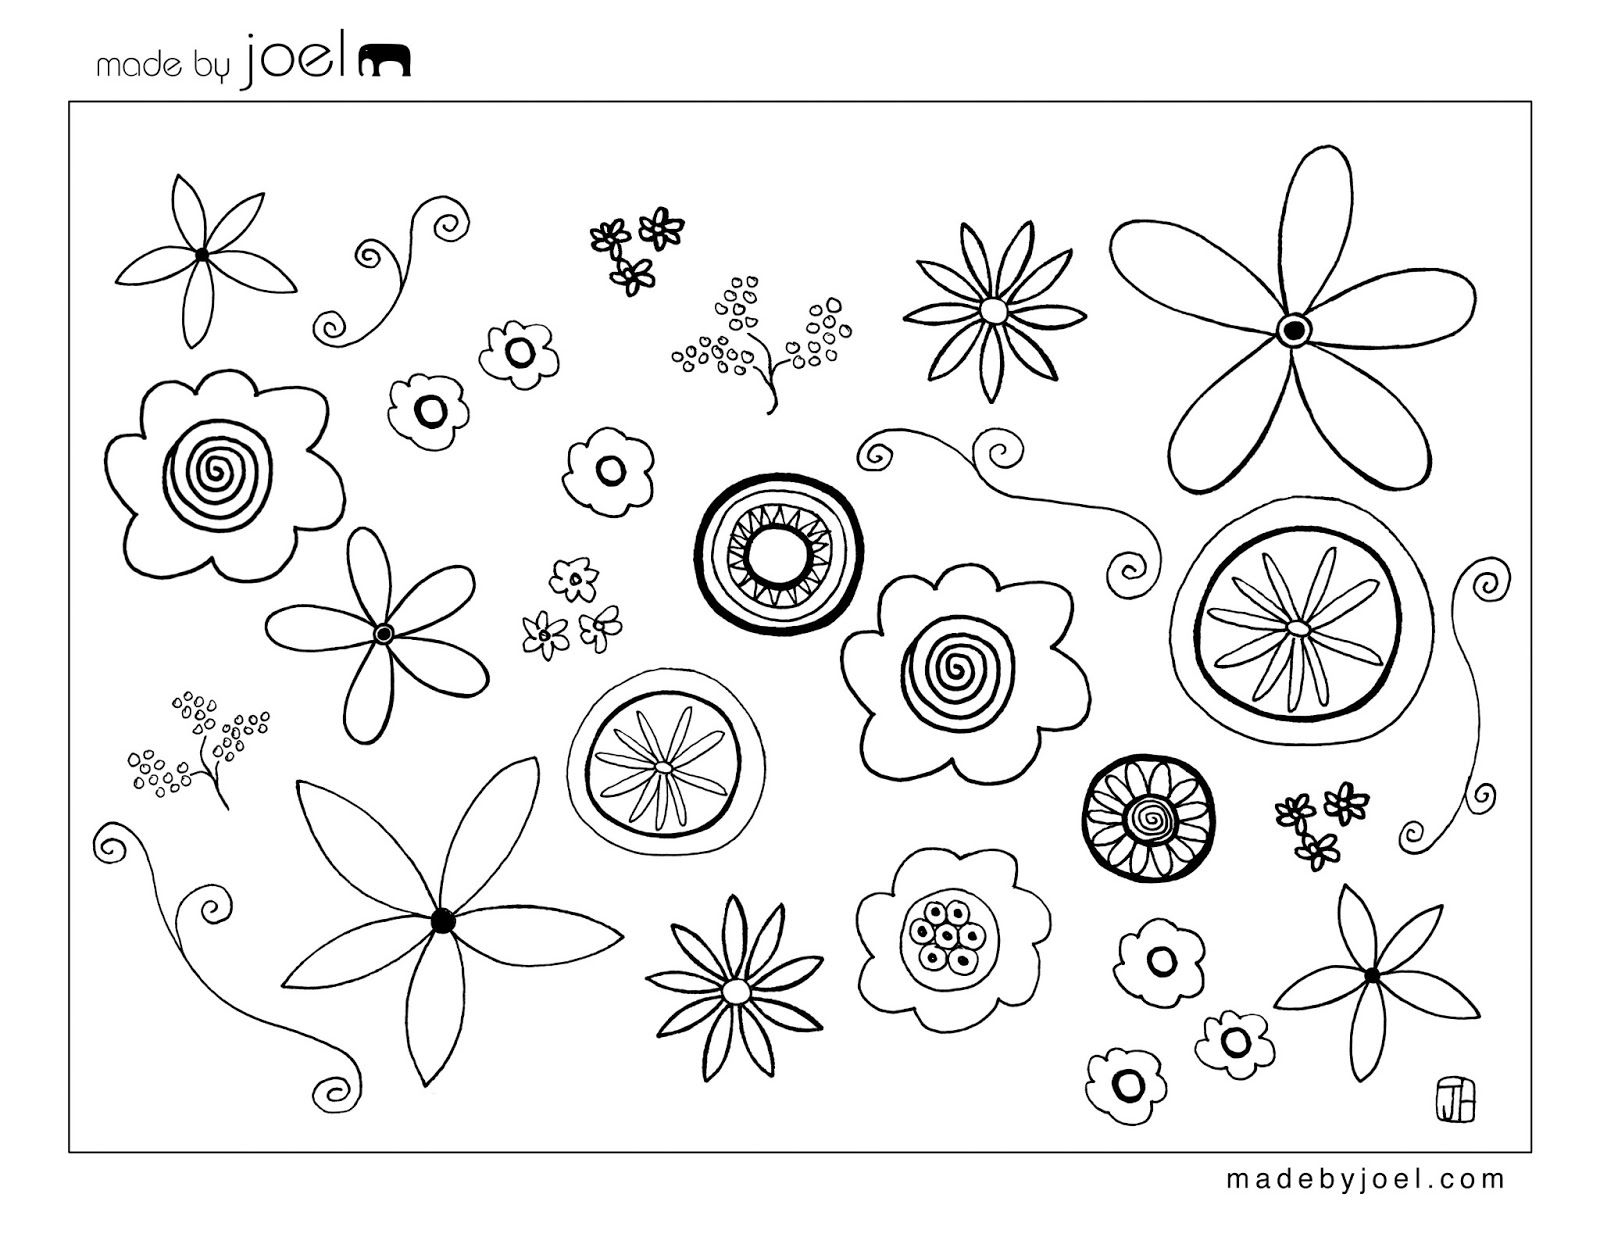 Free flower template paper petals and leaves templates made by joel flower coloring sheet free printable template pronofoot35fo Gallery